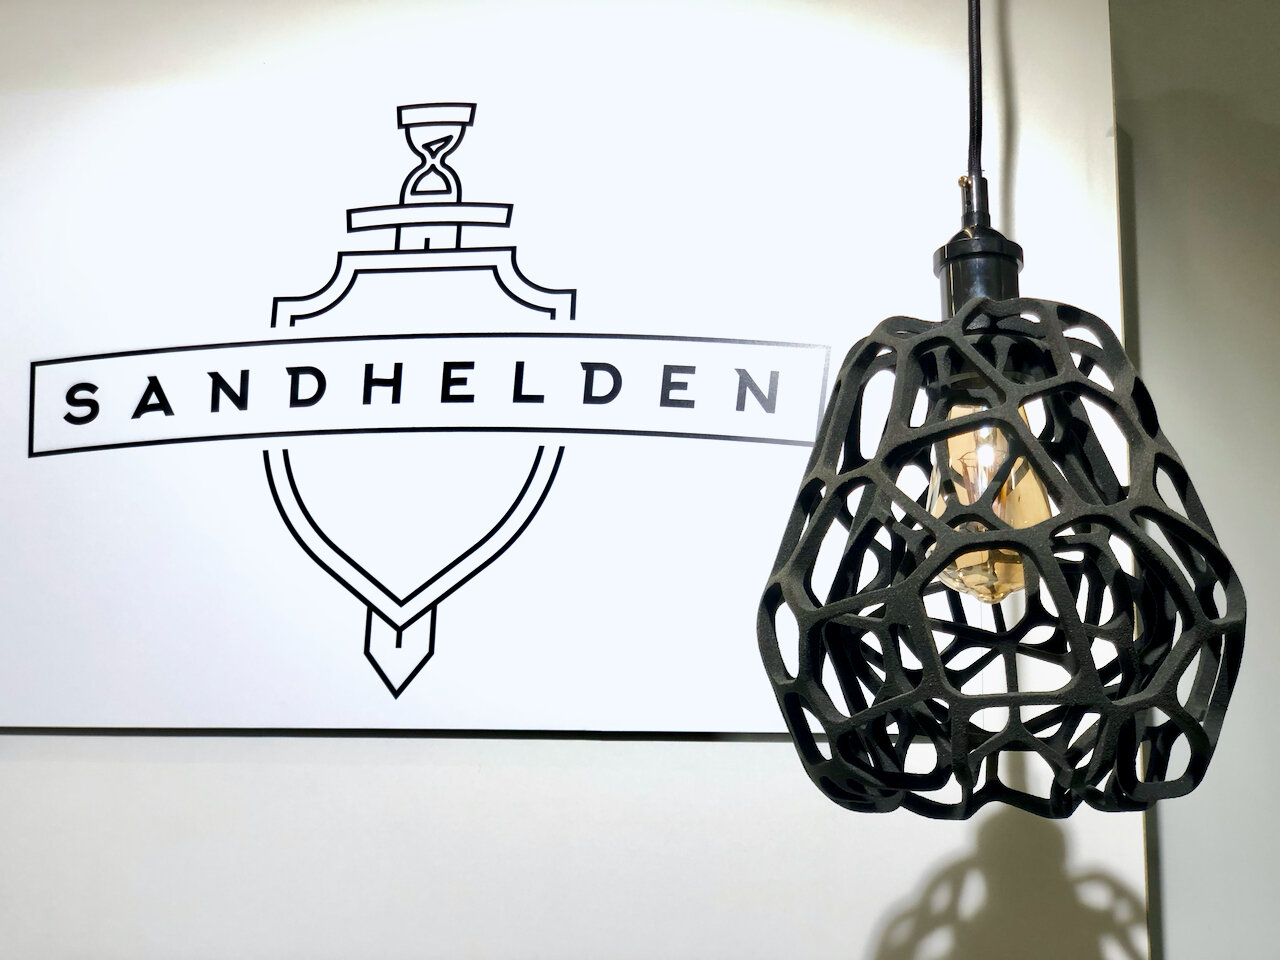 3D printed lamp made from specially-processed sand by Sandhelden [Source: Fabbaloo]